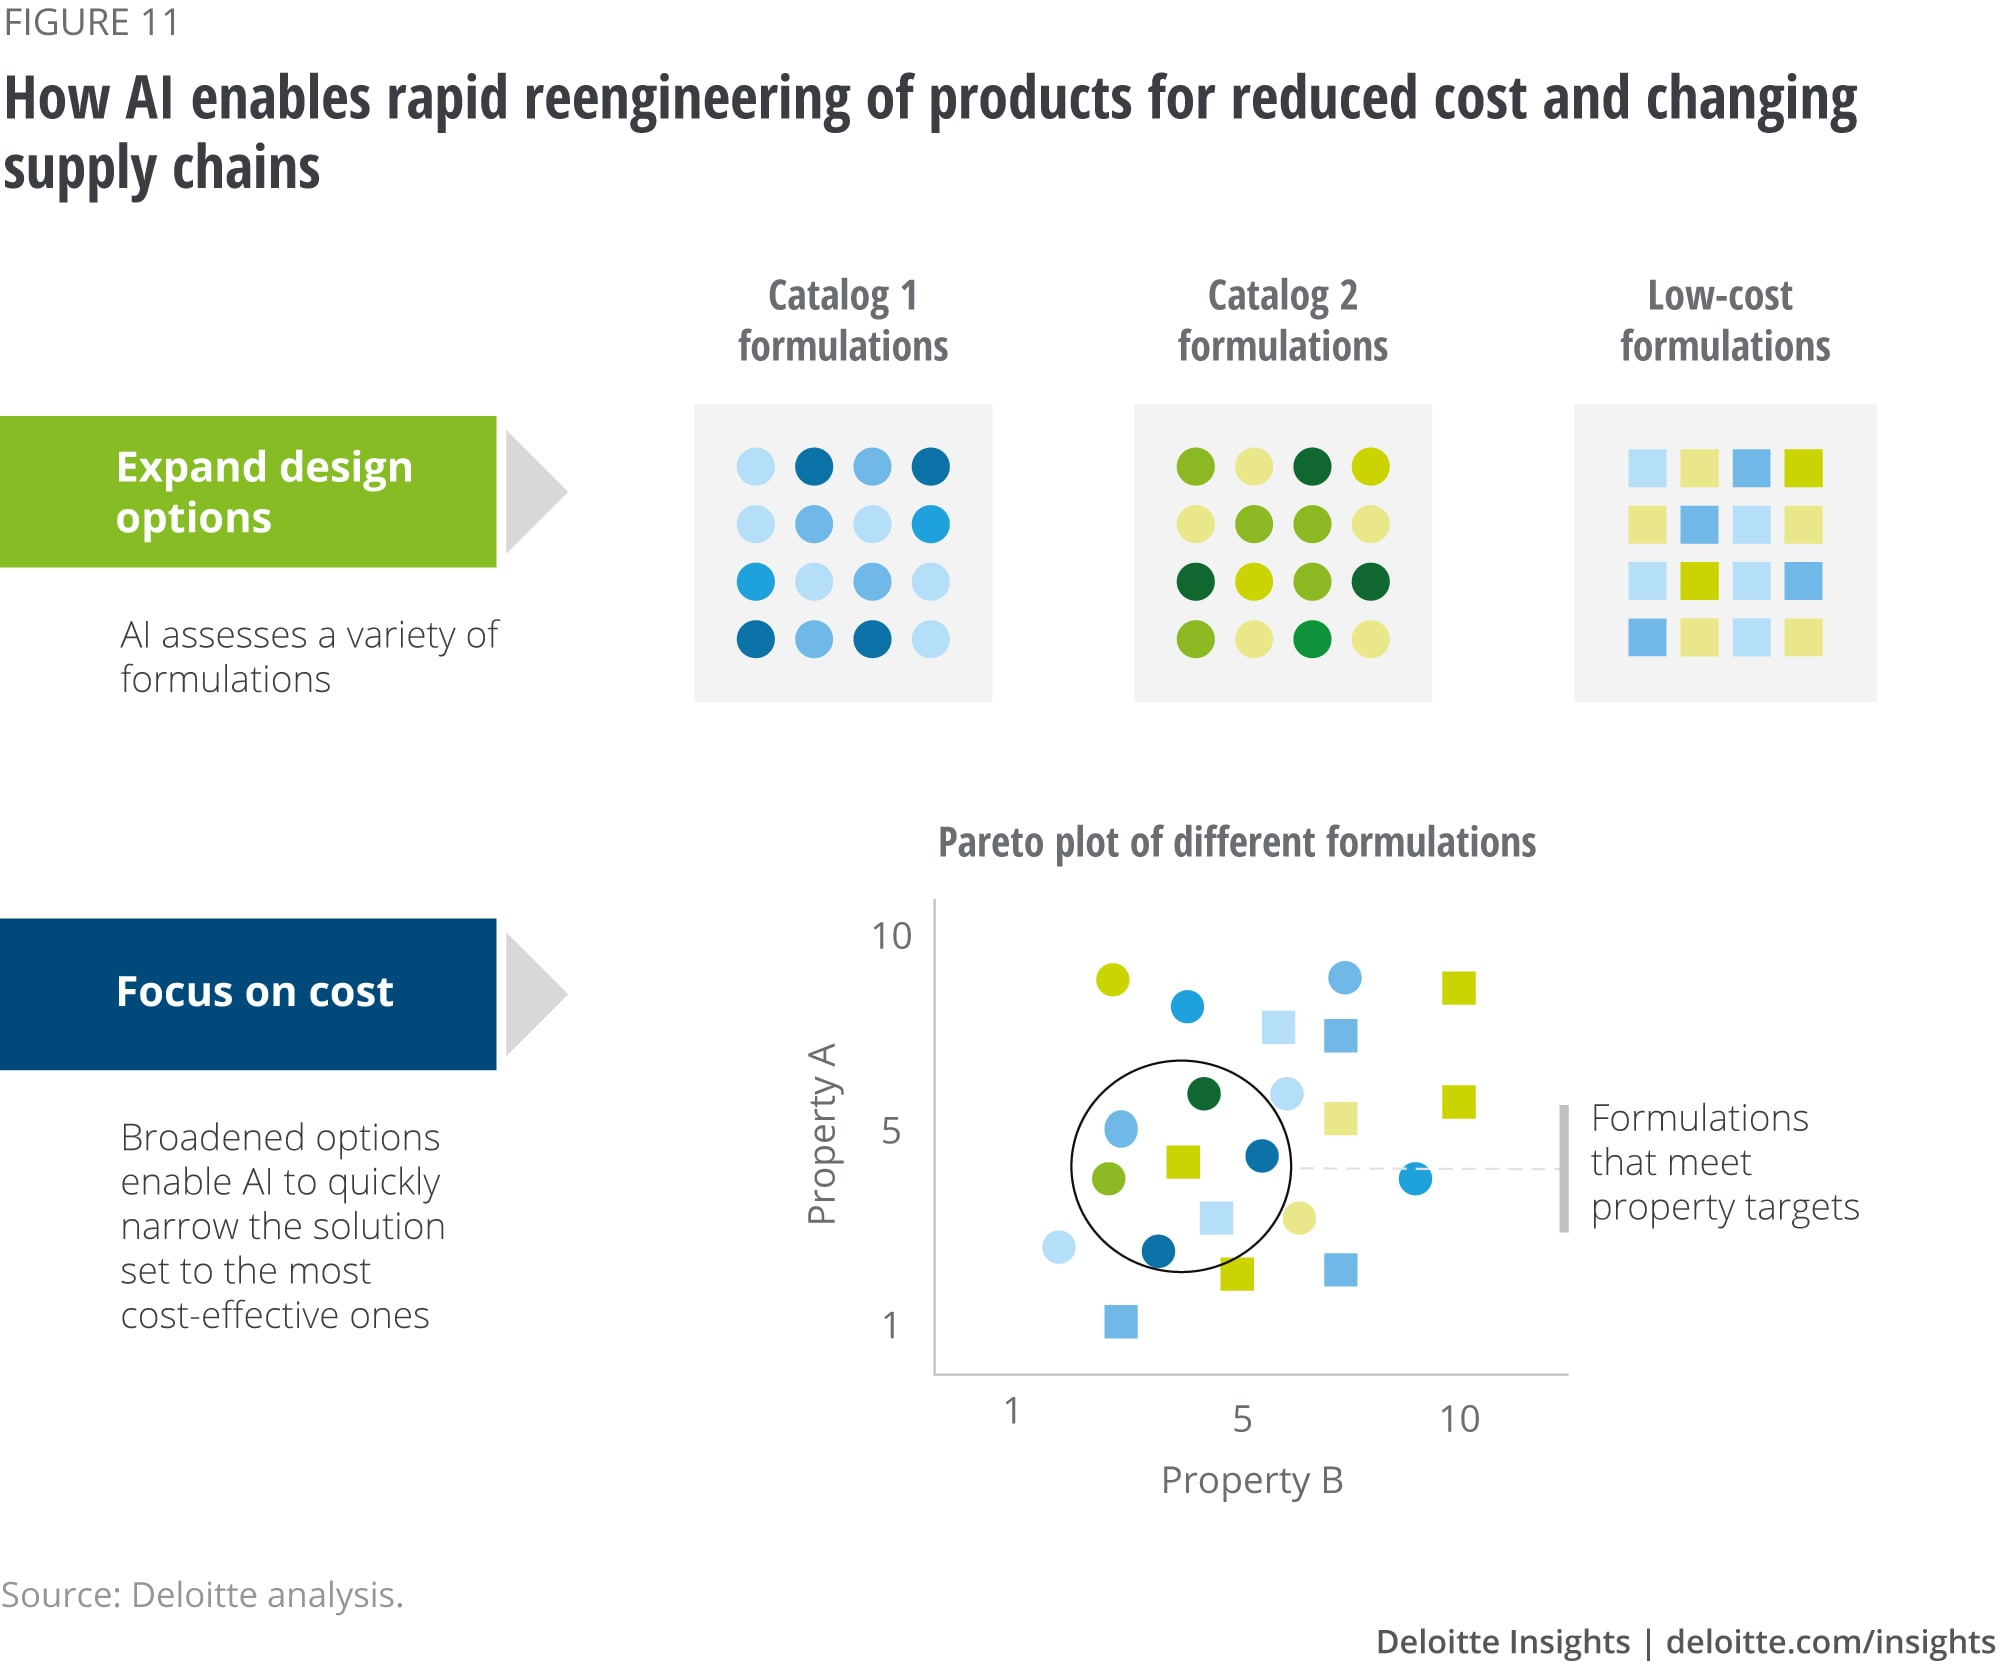 An illustration of how AI enables rapidly reengineering products for reduced cost and changing supply chains